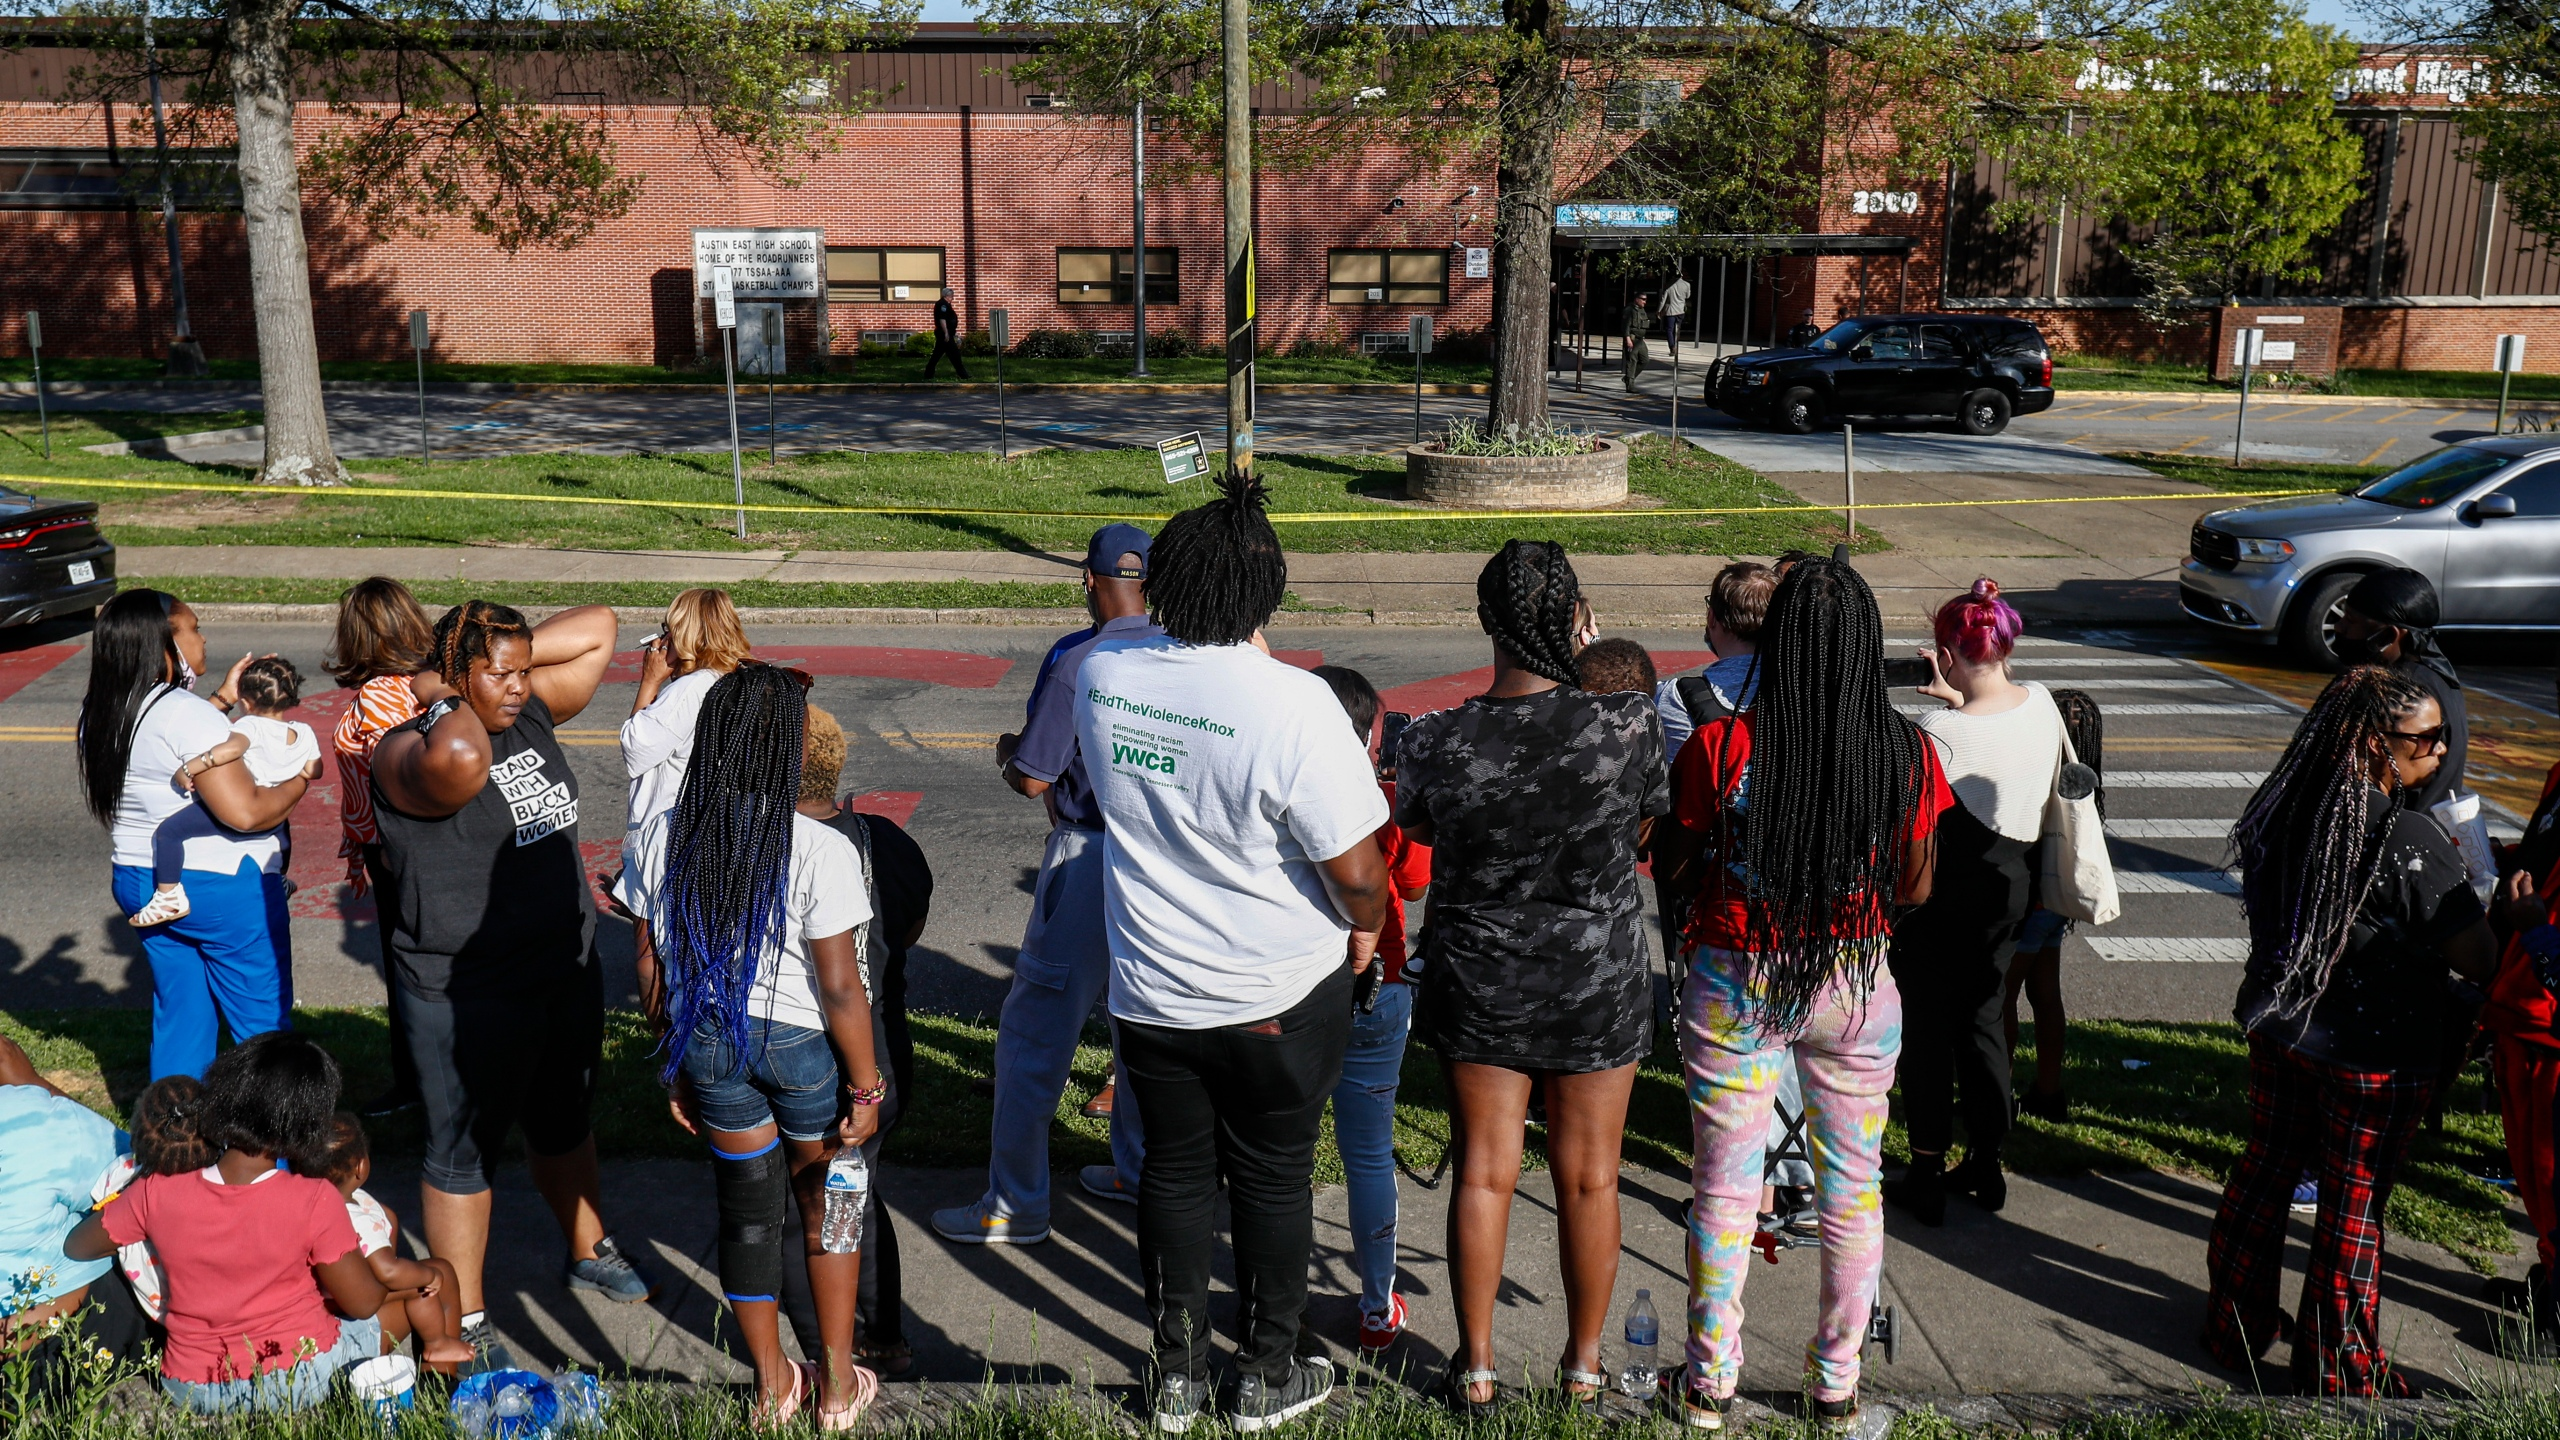 People look on as Knoxville police work the scene of a shooting at Austin-East Magnet High School in Knoxville, Tenn., on April 12, 2021. (Wade Payne / Associated Press)